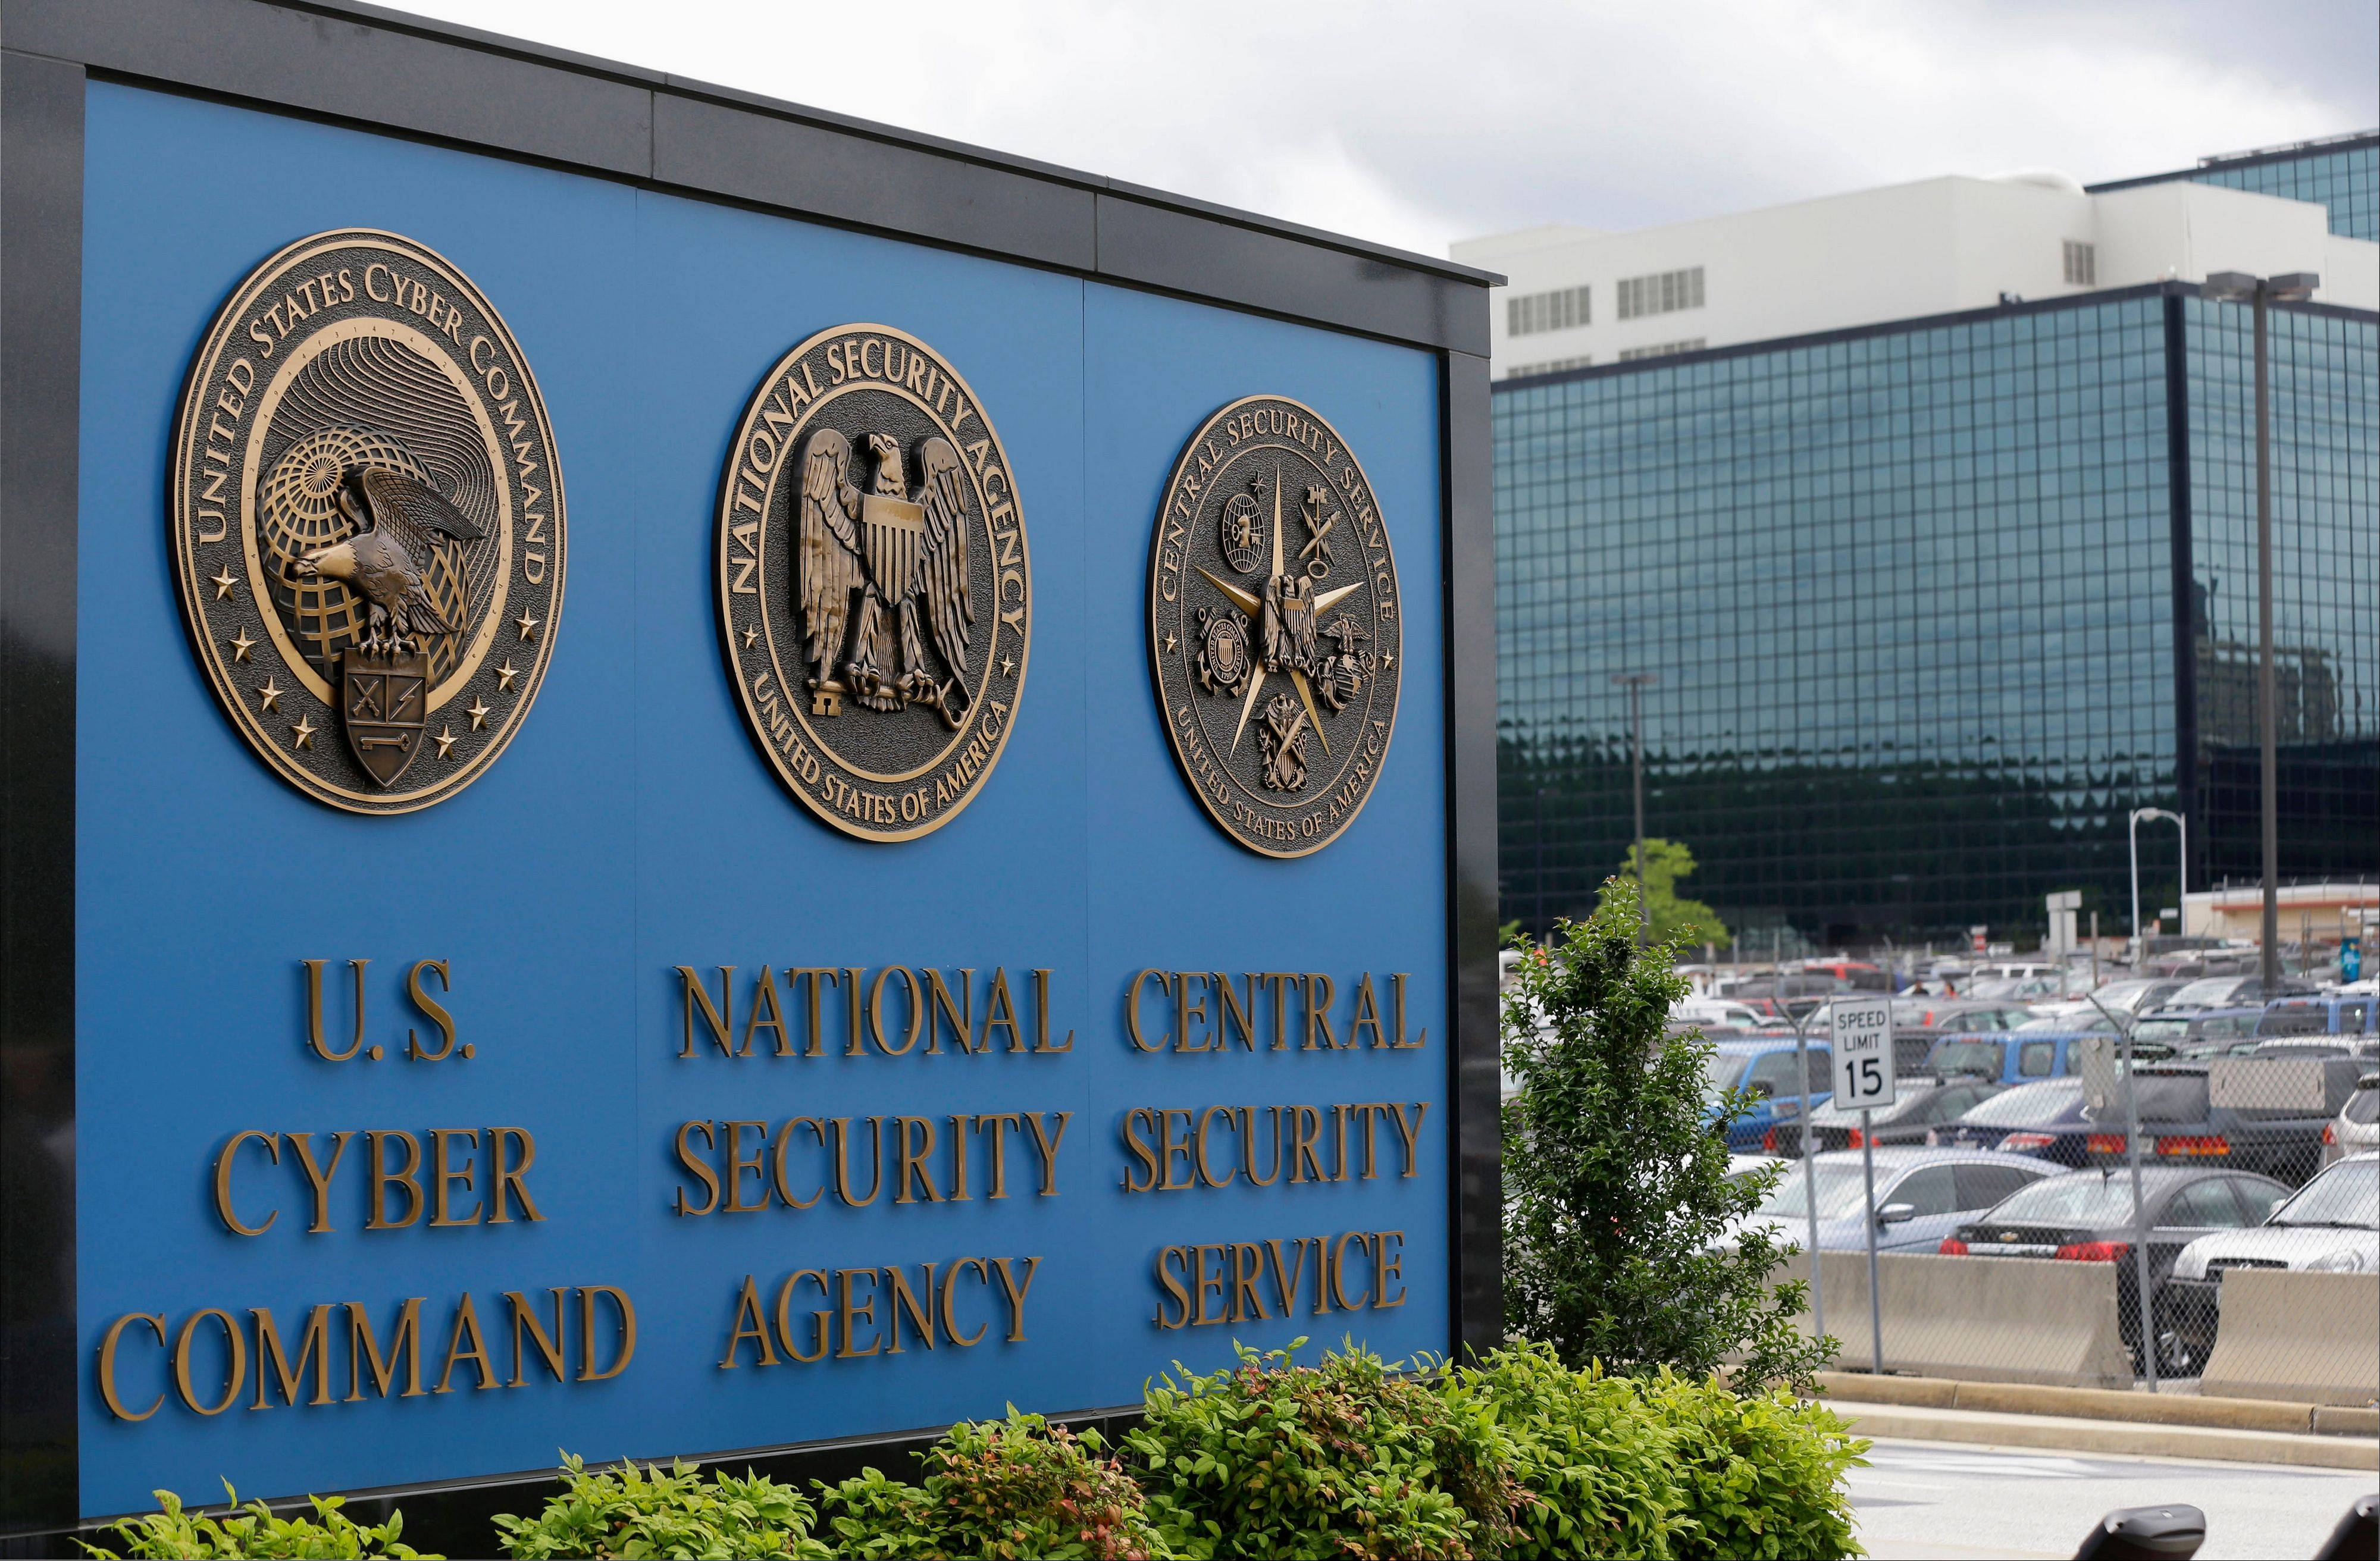 Telephone companies are quietly balking at the idea of changing how they collect and store Americans' phone records to help the NSA's surveillance programs. They're worried about their exposure to lawsuits and the price tag if the U.S. government asks them to hold information about customers for longer than they already do.